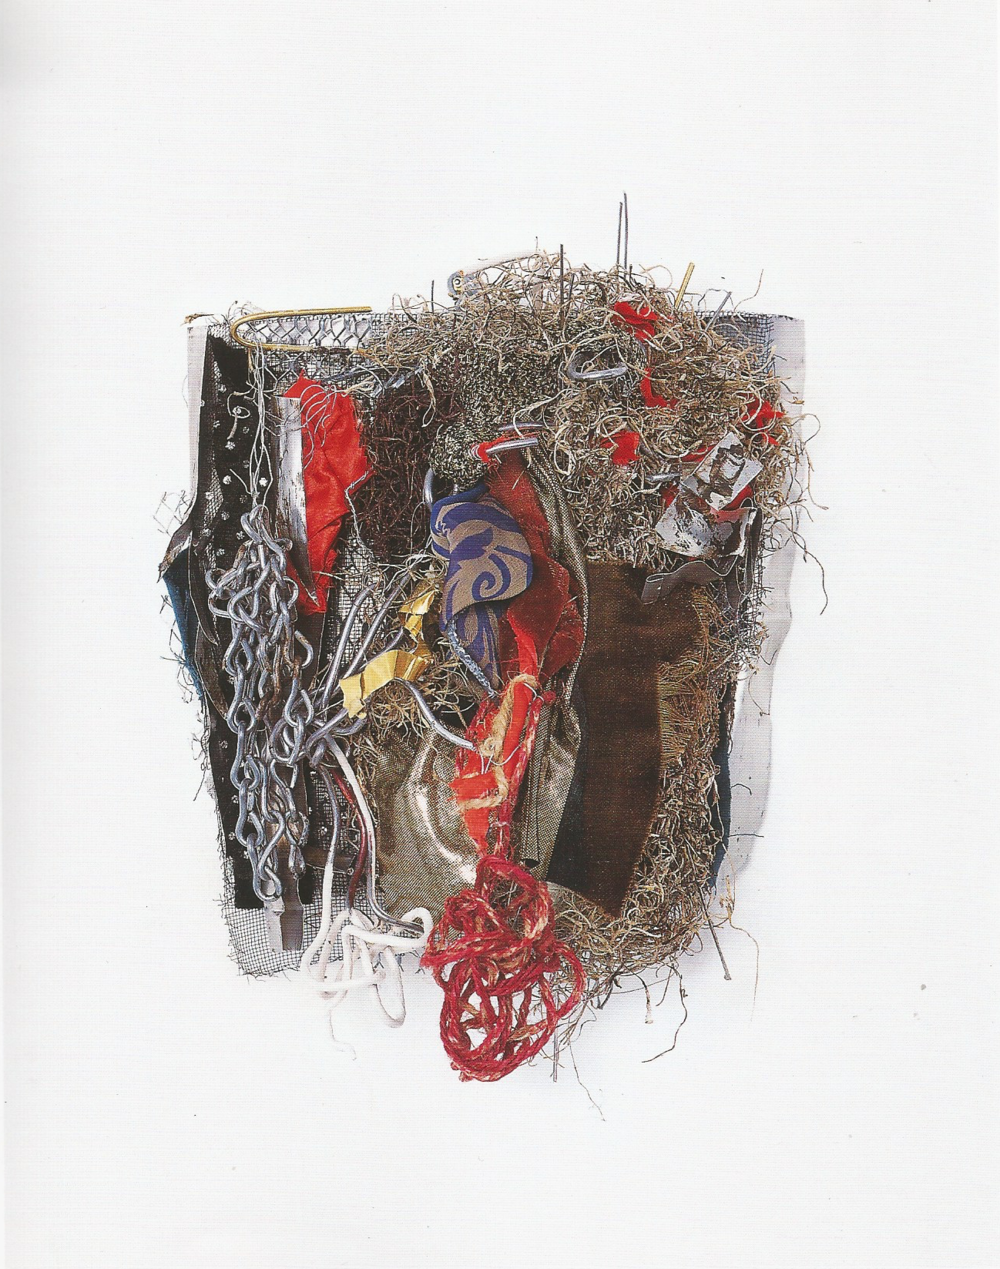 "Re née Lerner: Alchemy   ,   Fabric, moss, wires, metal, chain, hemp, acrylic, tin sheet on aluminum, 14.5"" x 9.5""x 5.5'', 2001"